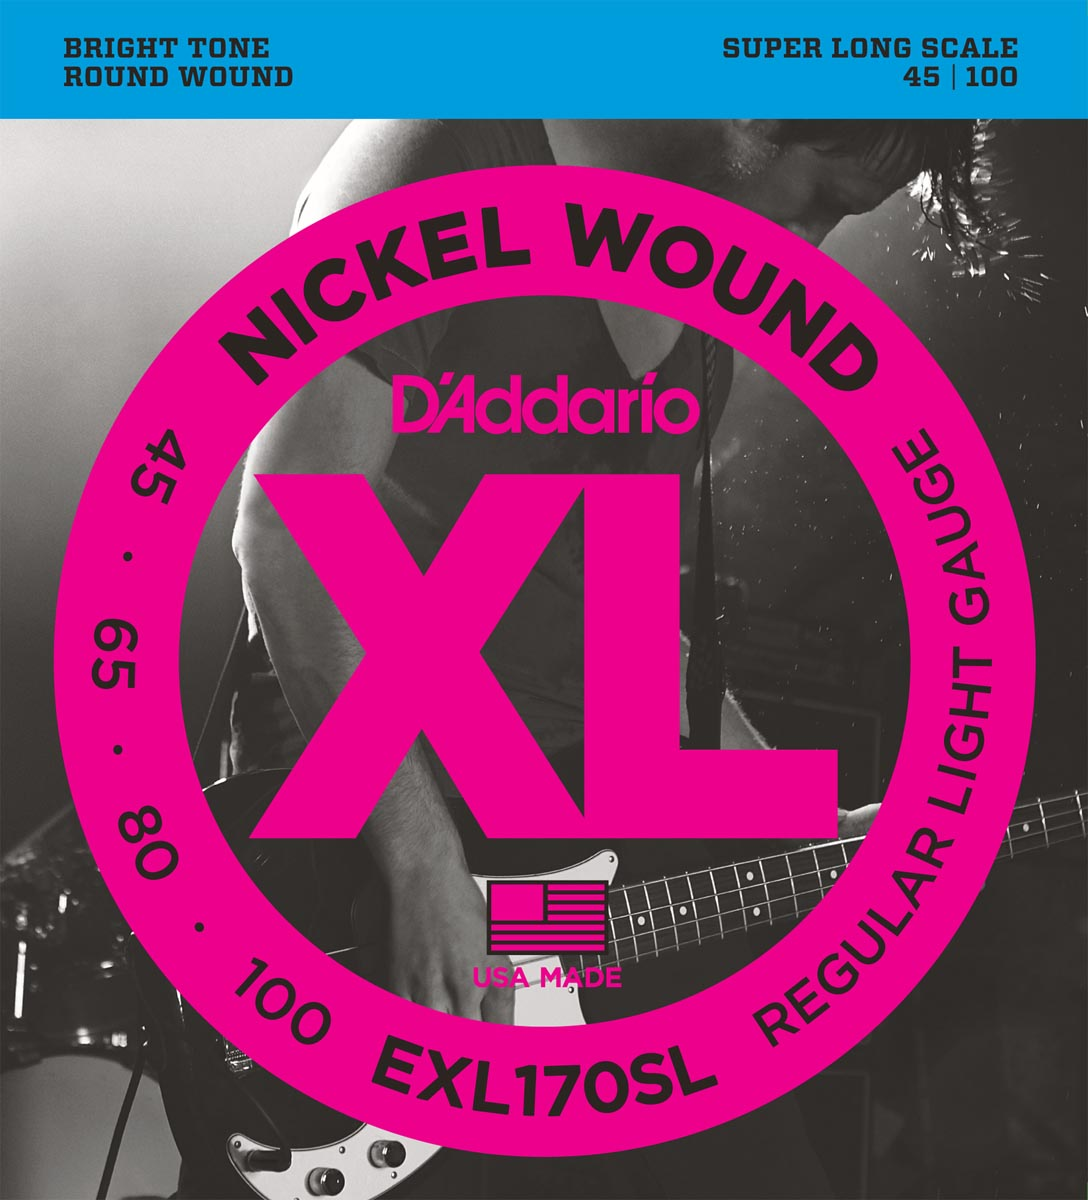 DADDARIO EXL170SL NICKEL WOUND, LIGHT, SUPER LONG SCALE [45-100]